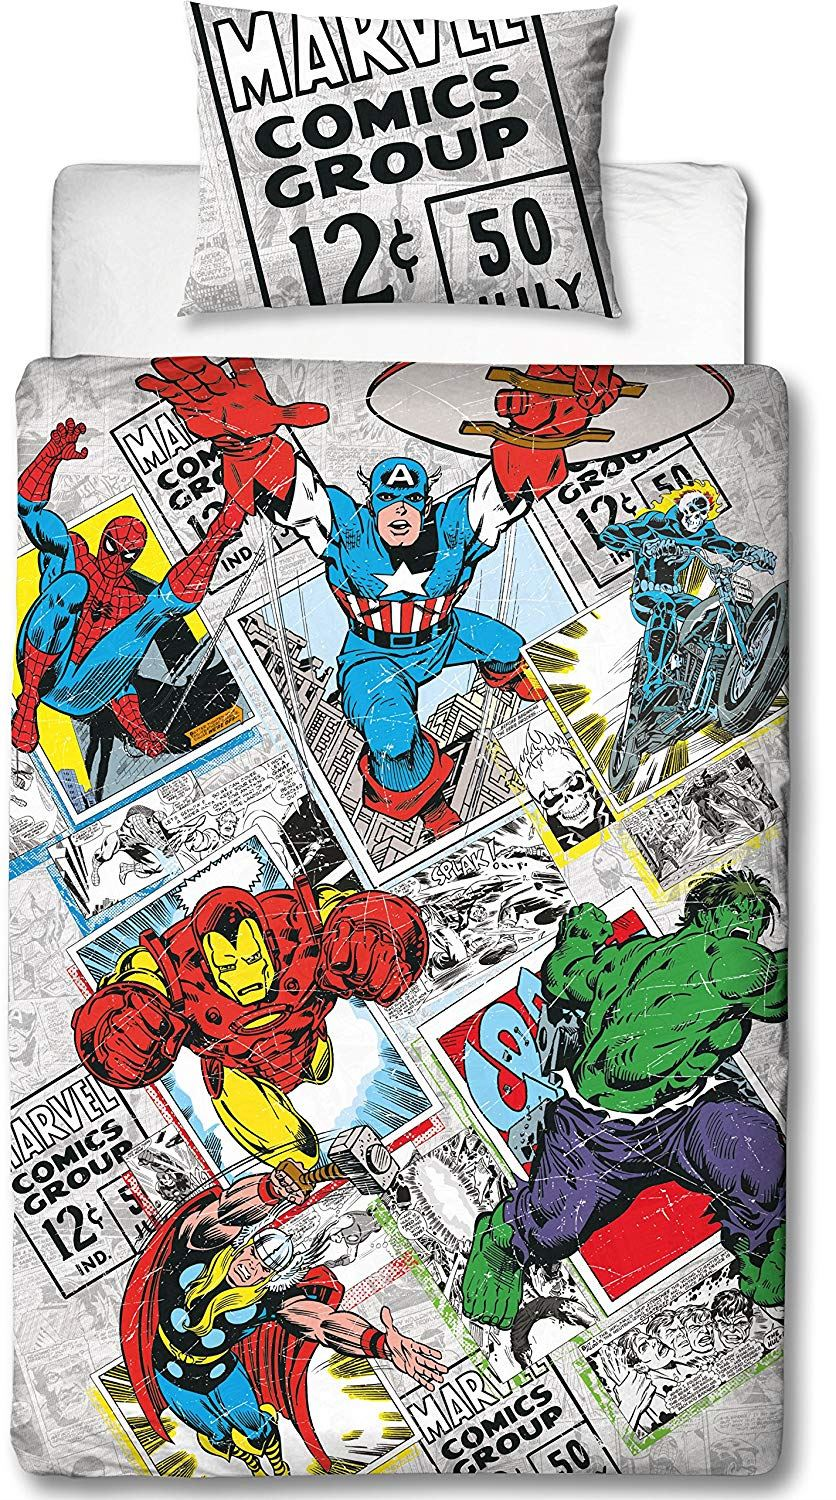 Official-Marvel-Comics-Avengers-Licensed-Duvet-Covers-Single-Double thumbnail 33